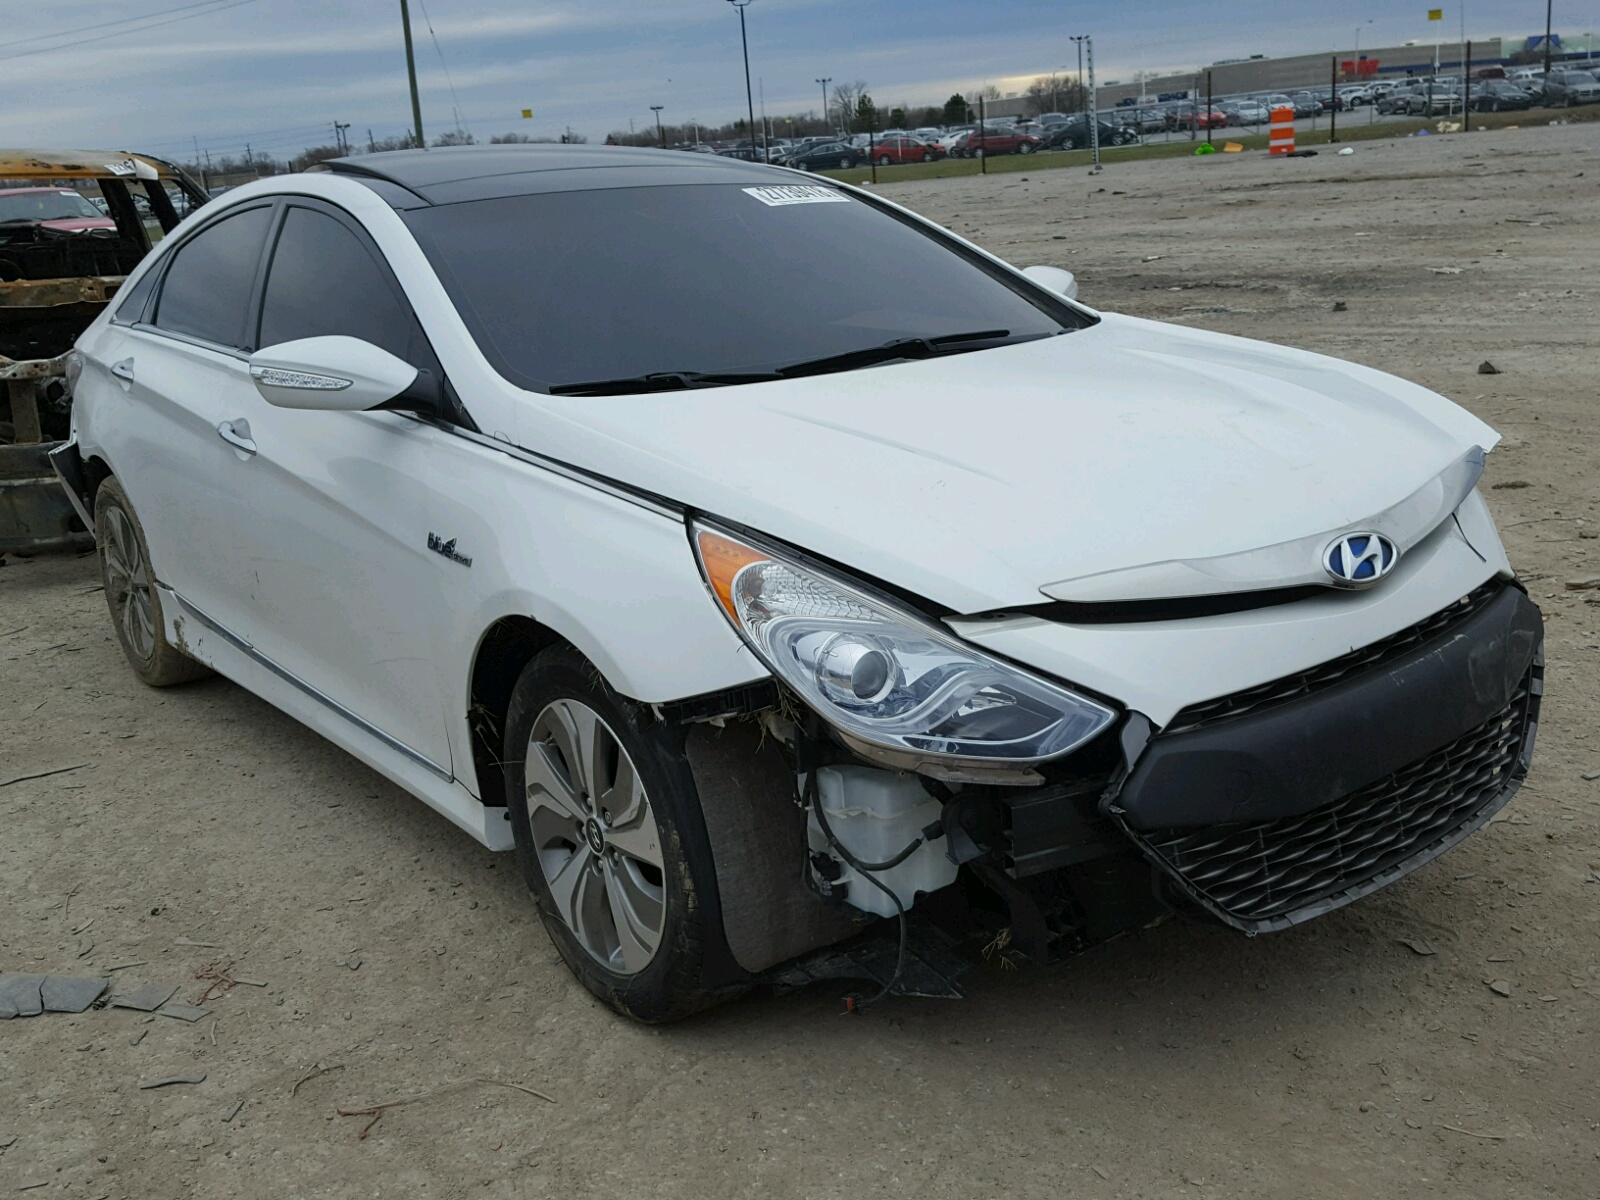 online silver auctions hyundai copart cert salvage lot carfinder in en title sale indianapolis sonata on of gls view auto left